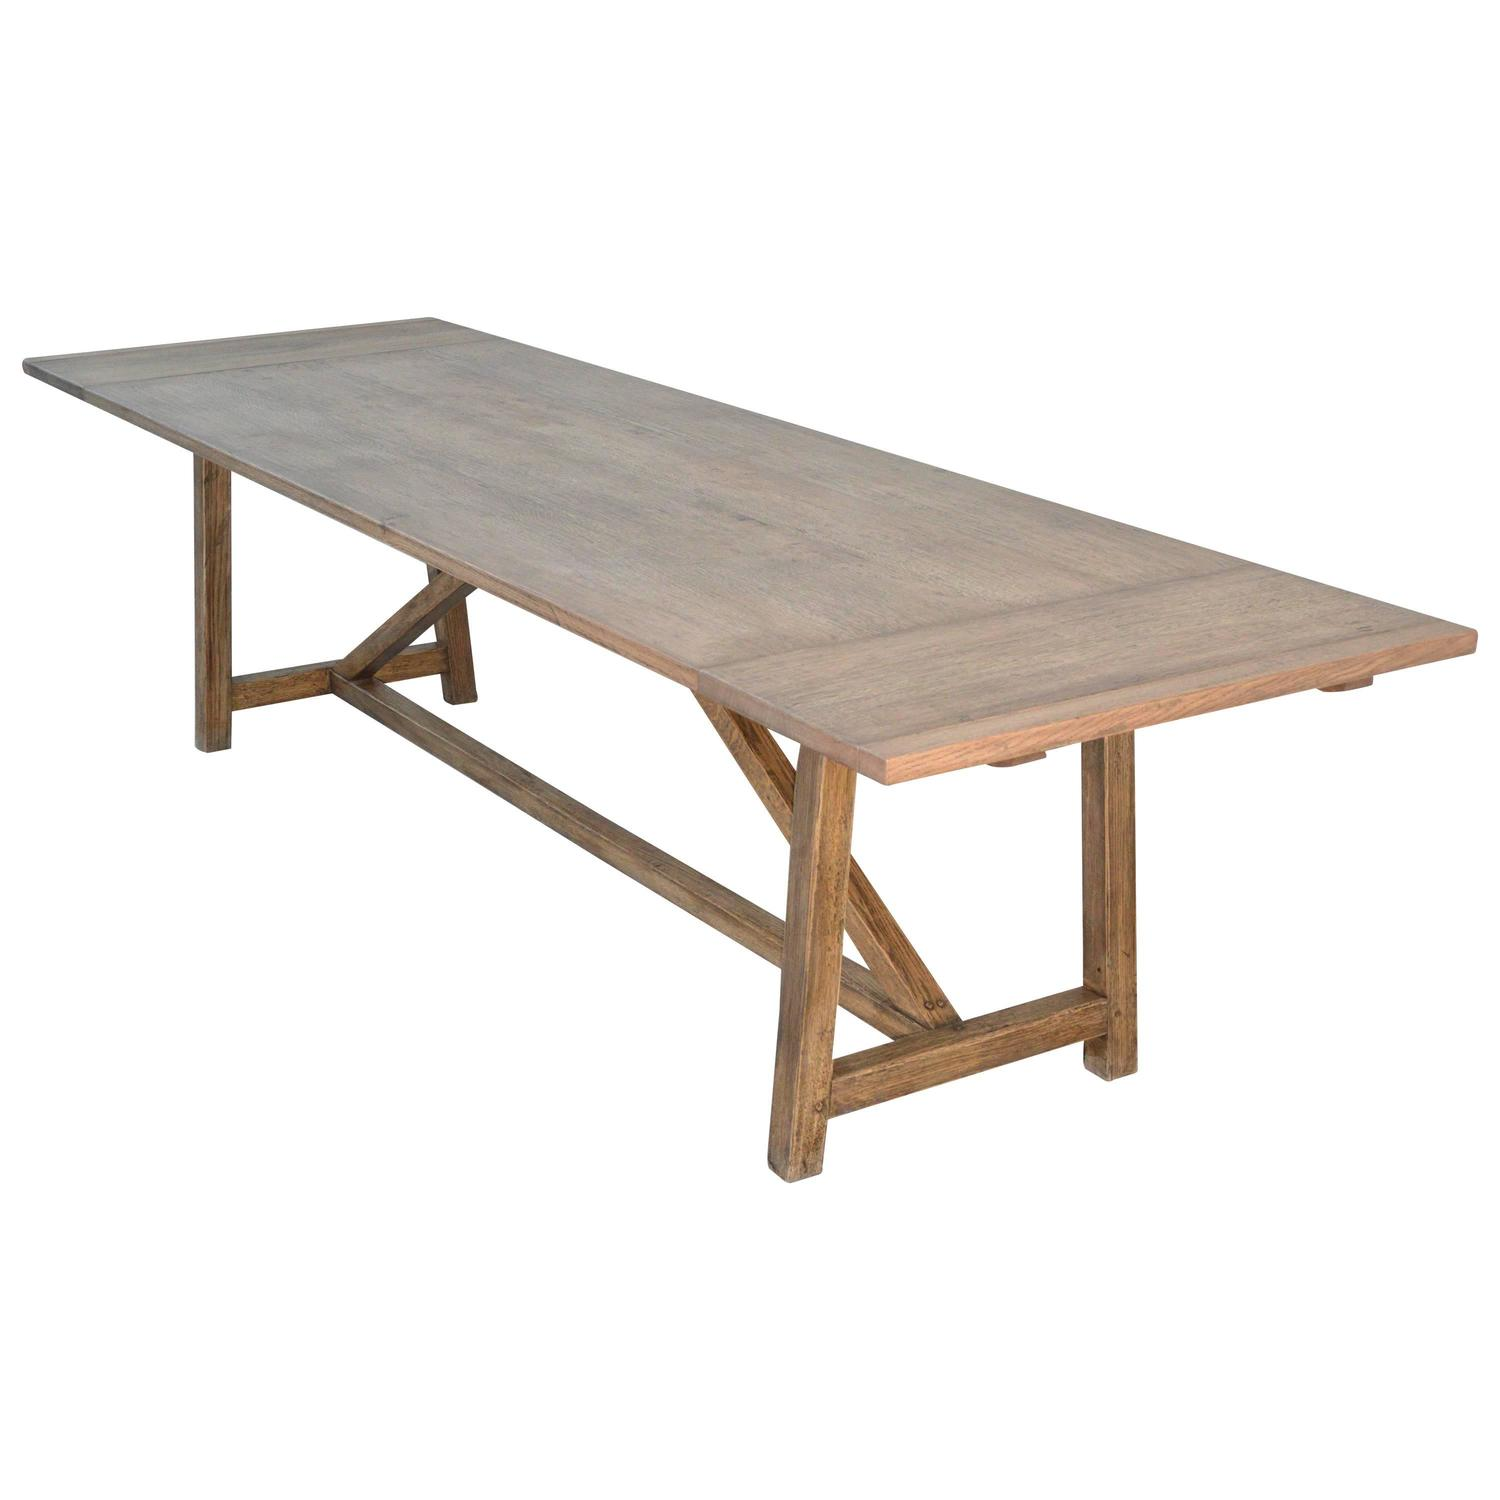 Custom dining table in vintage oak extendable for sale at for Unique kitchen tables for sale